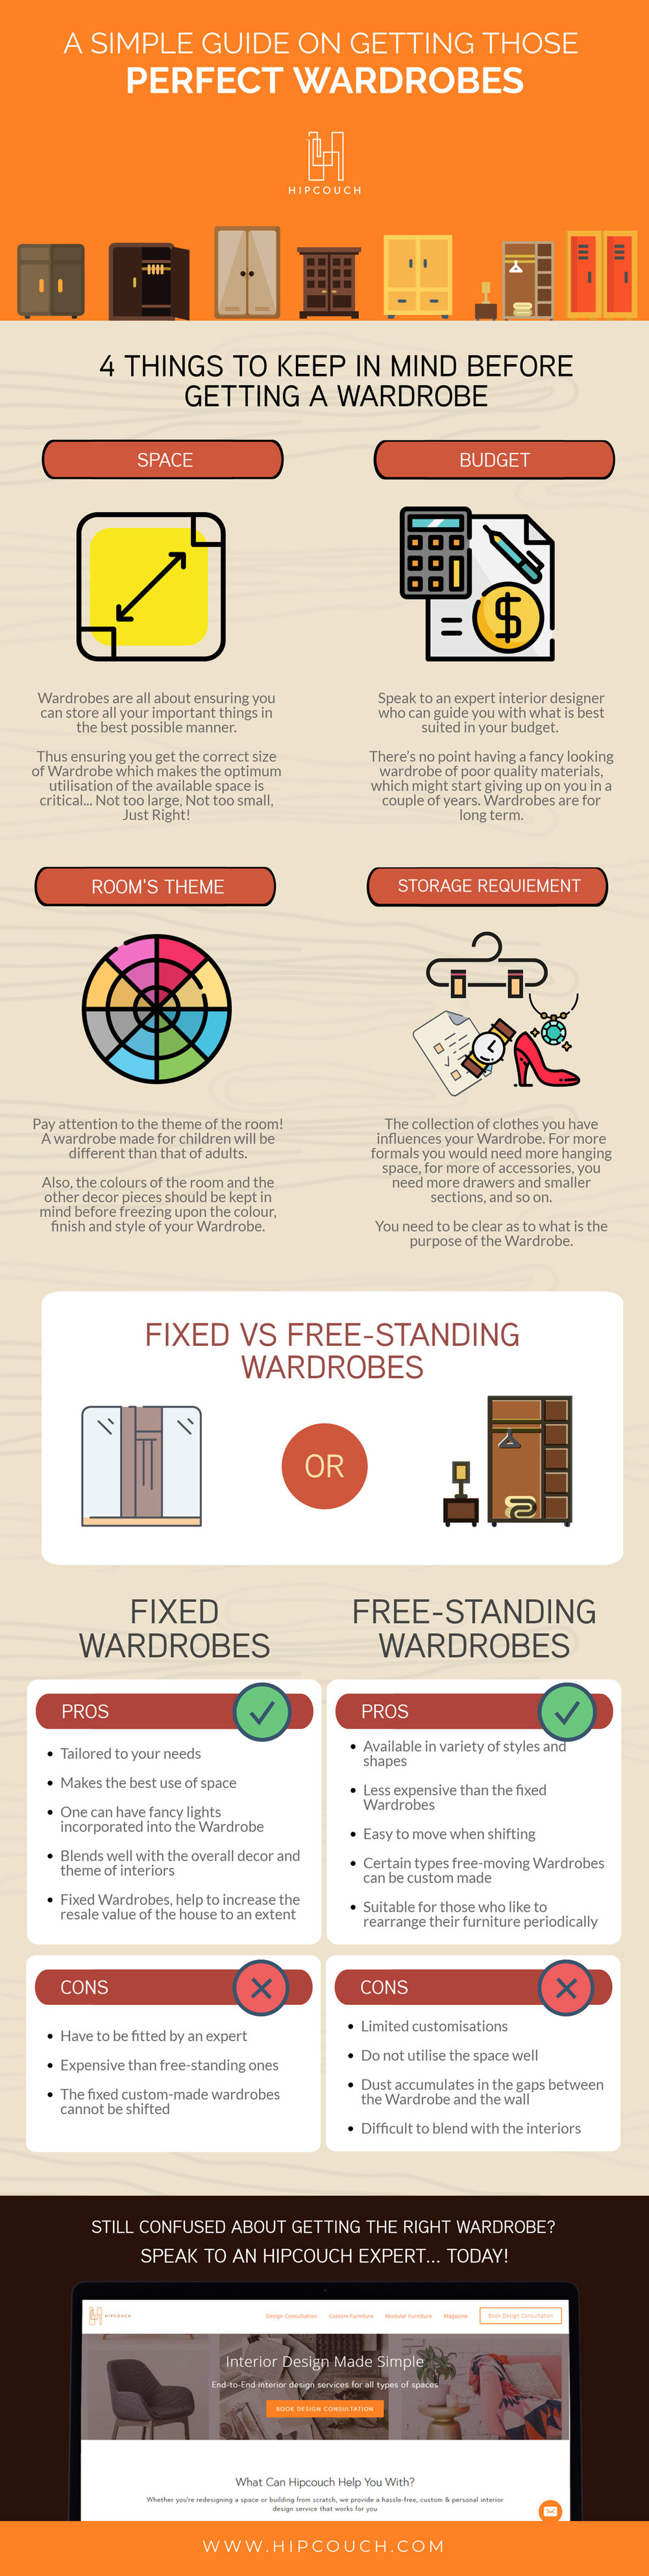 All You Need To Know About Getting Those Perfect Wardrobes